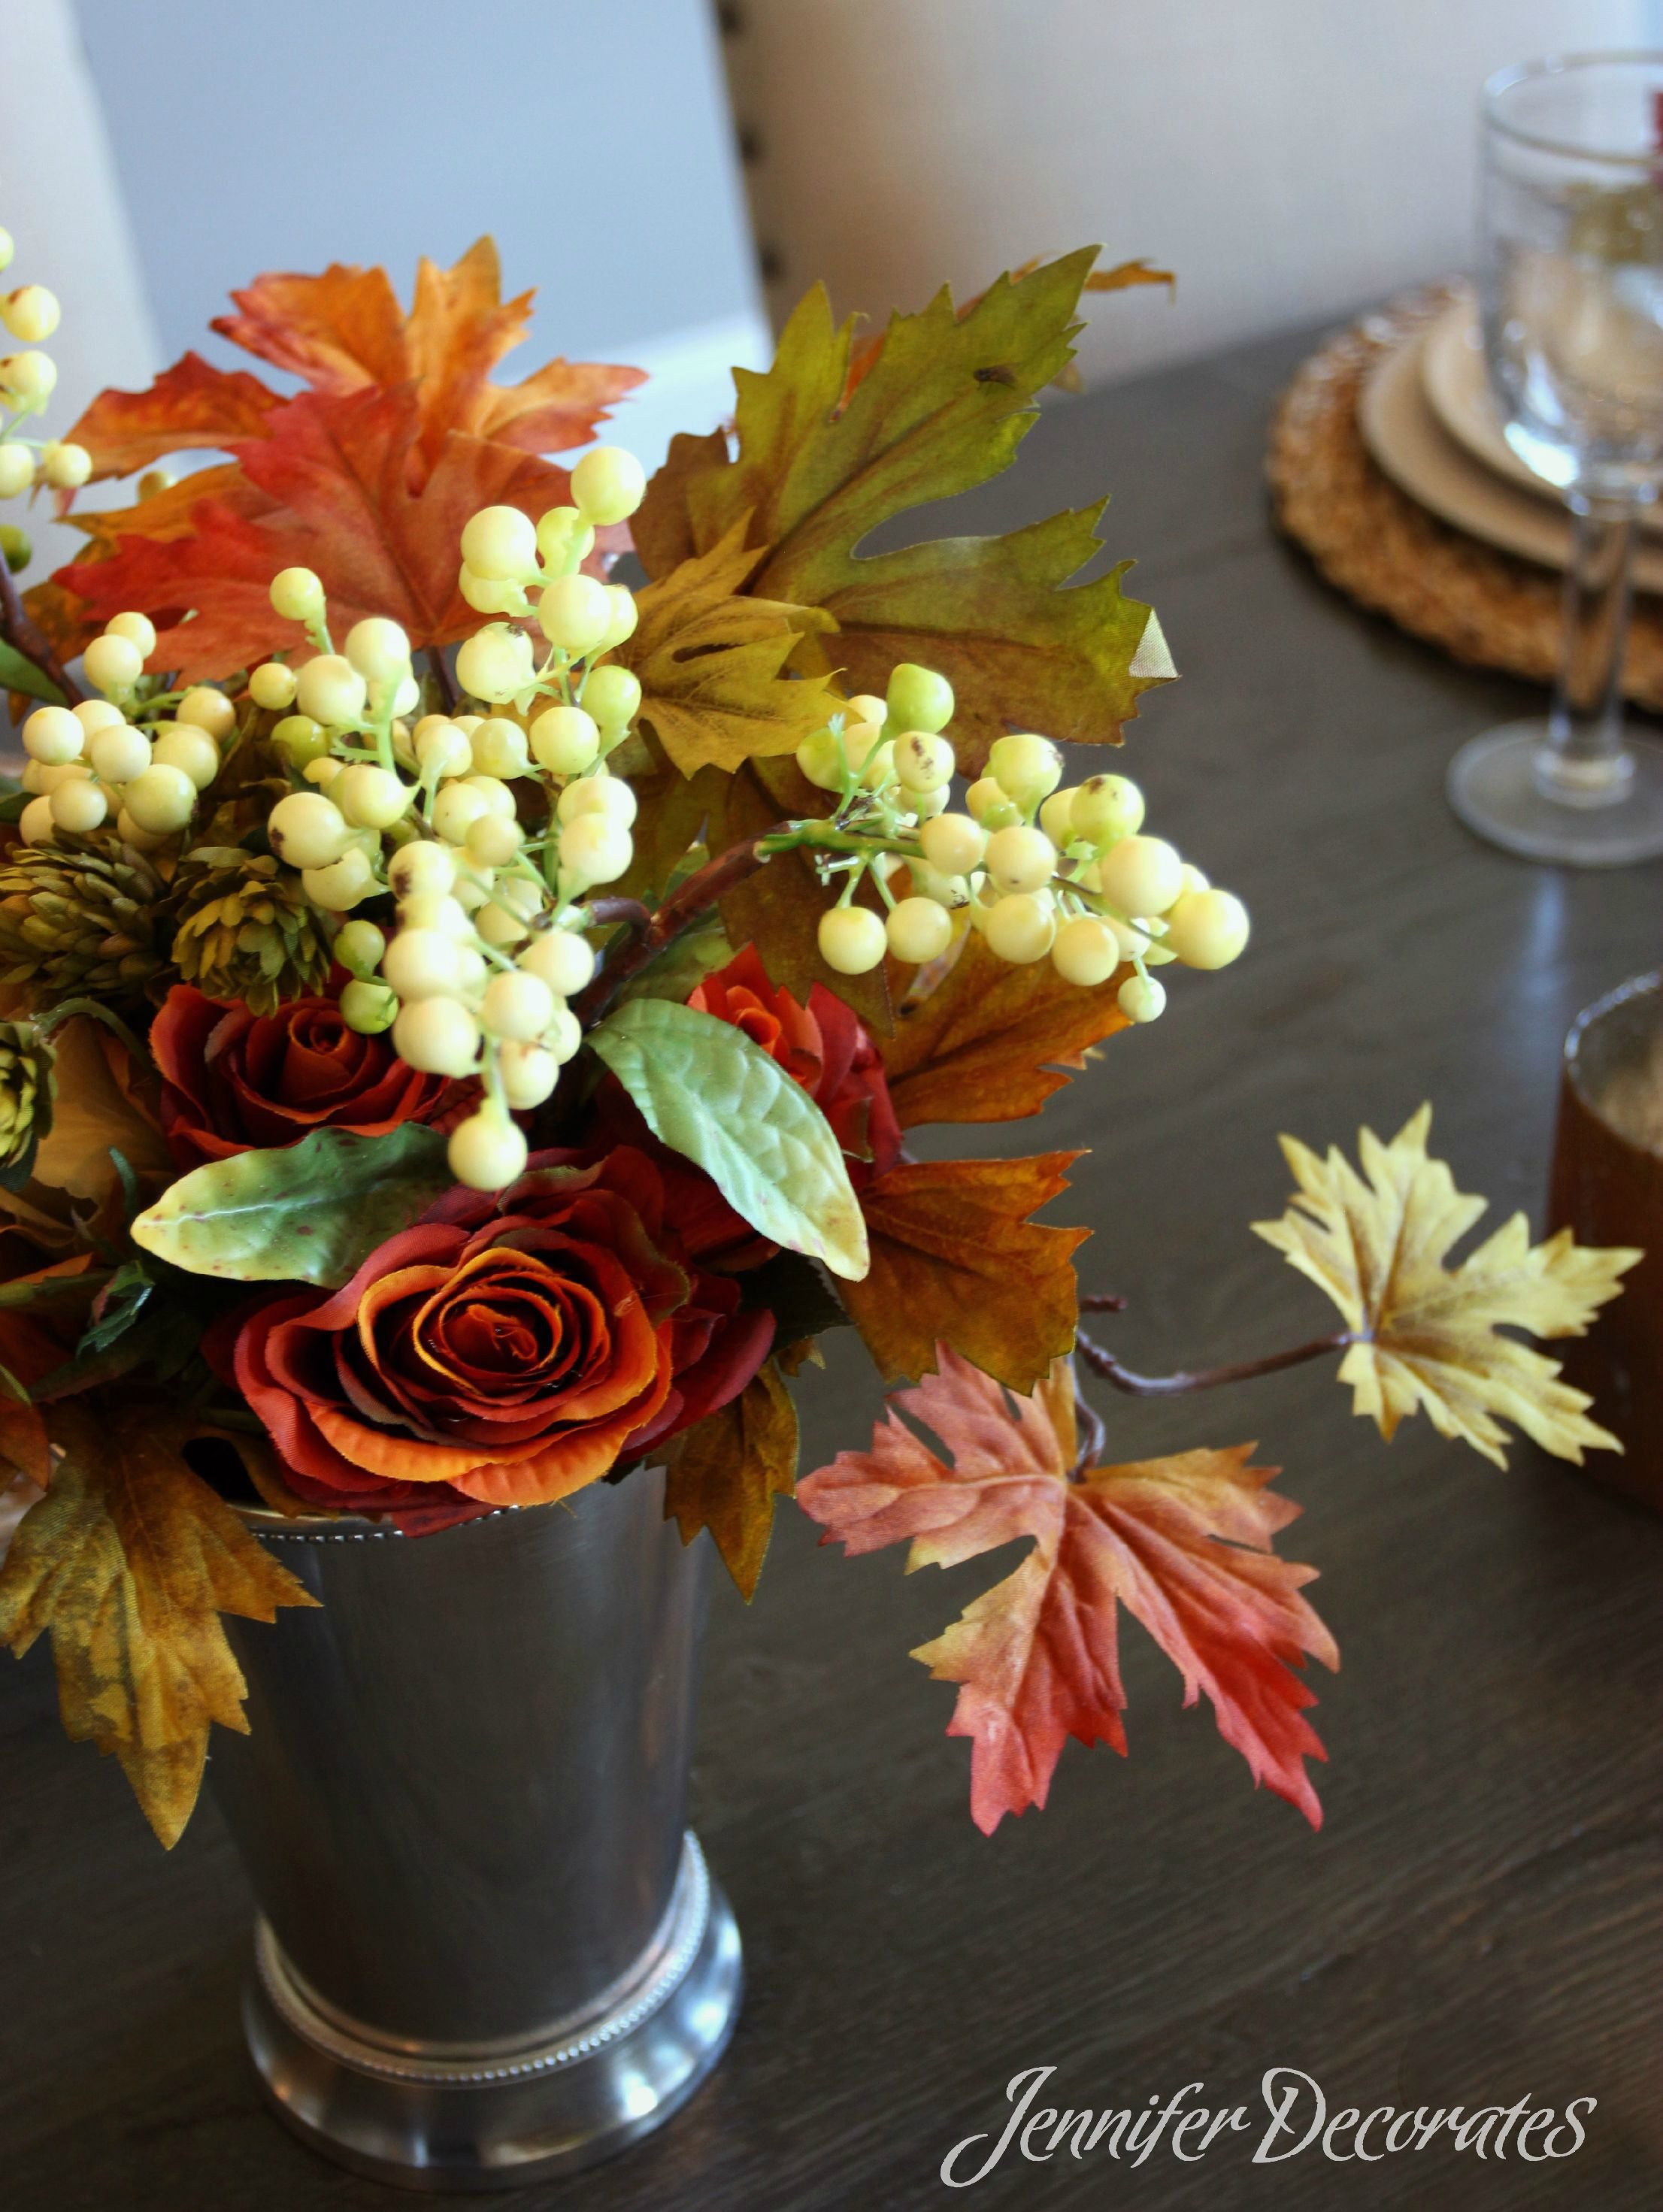 Create A Small Fall Floral Arrangement For An Outdoor Table